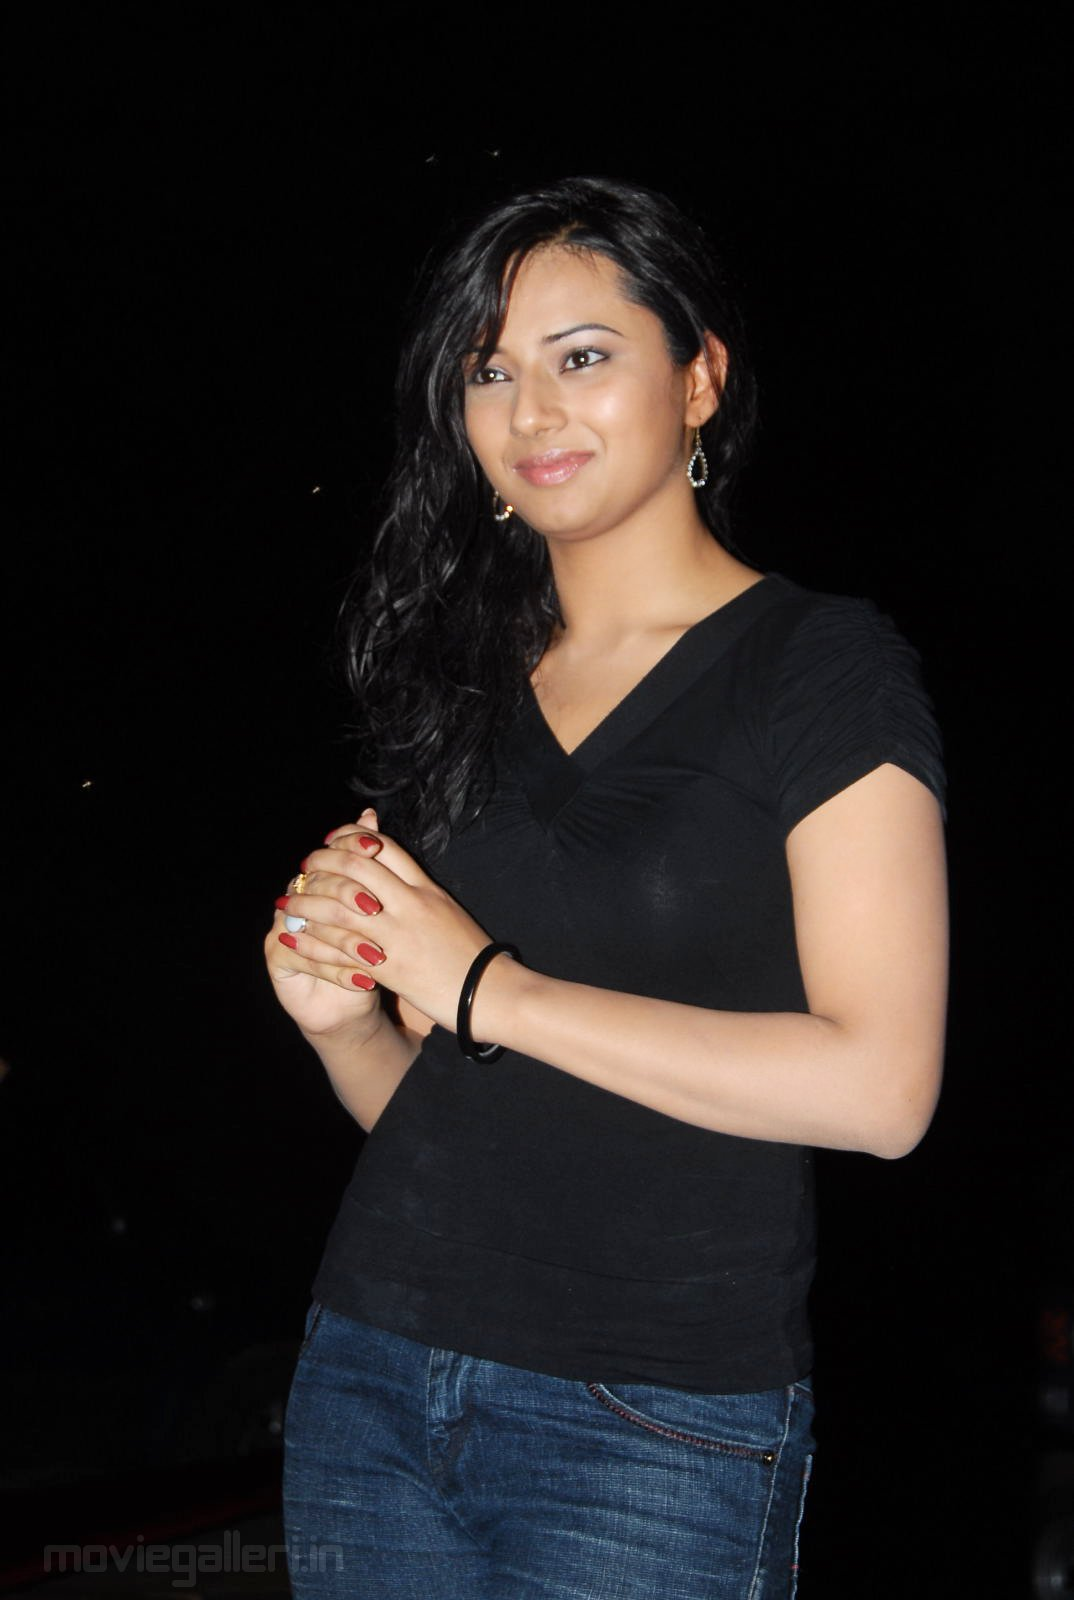 ... chawla cute gallery prema kavali movie actress isha chawla wallpapers